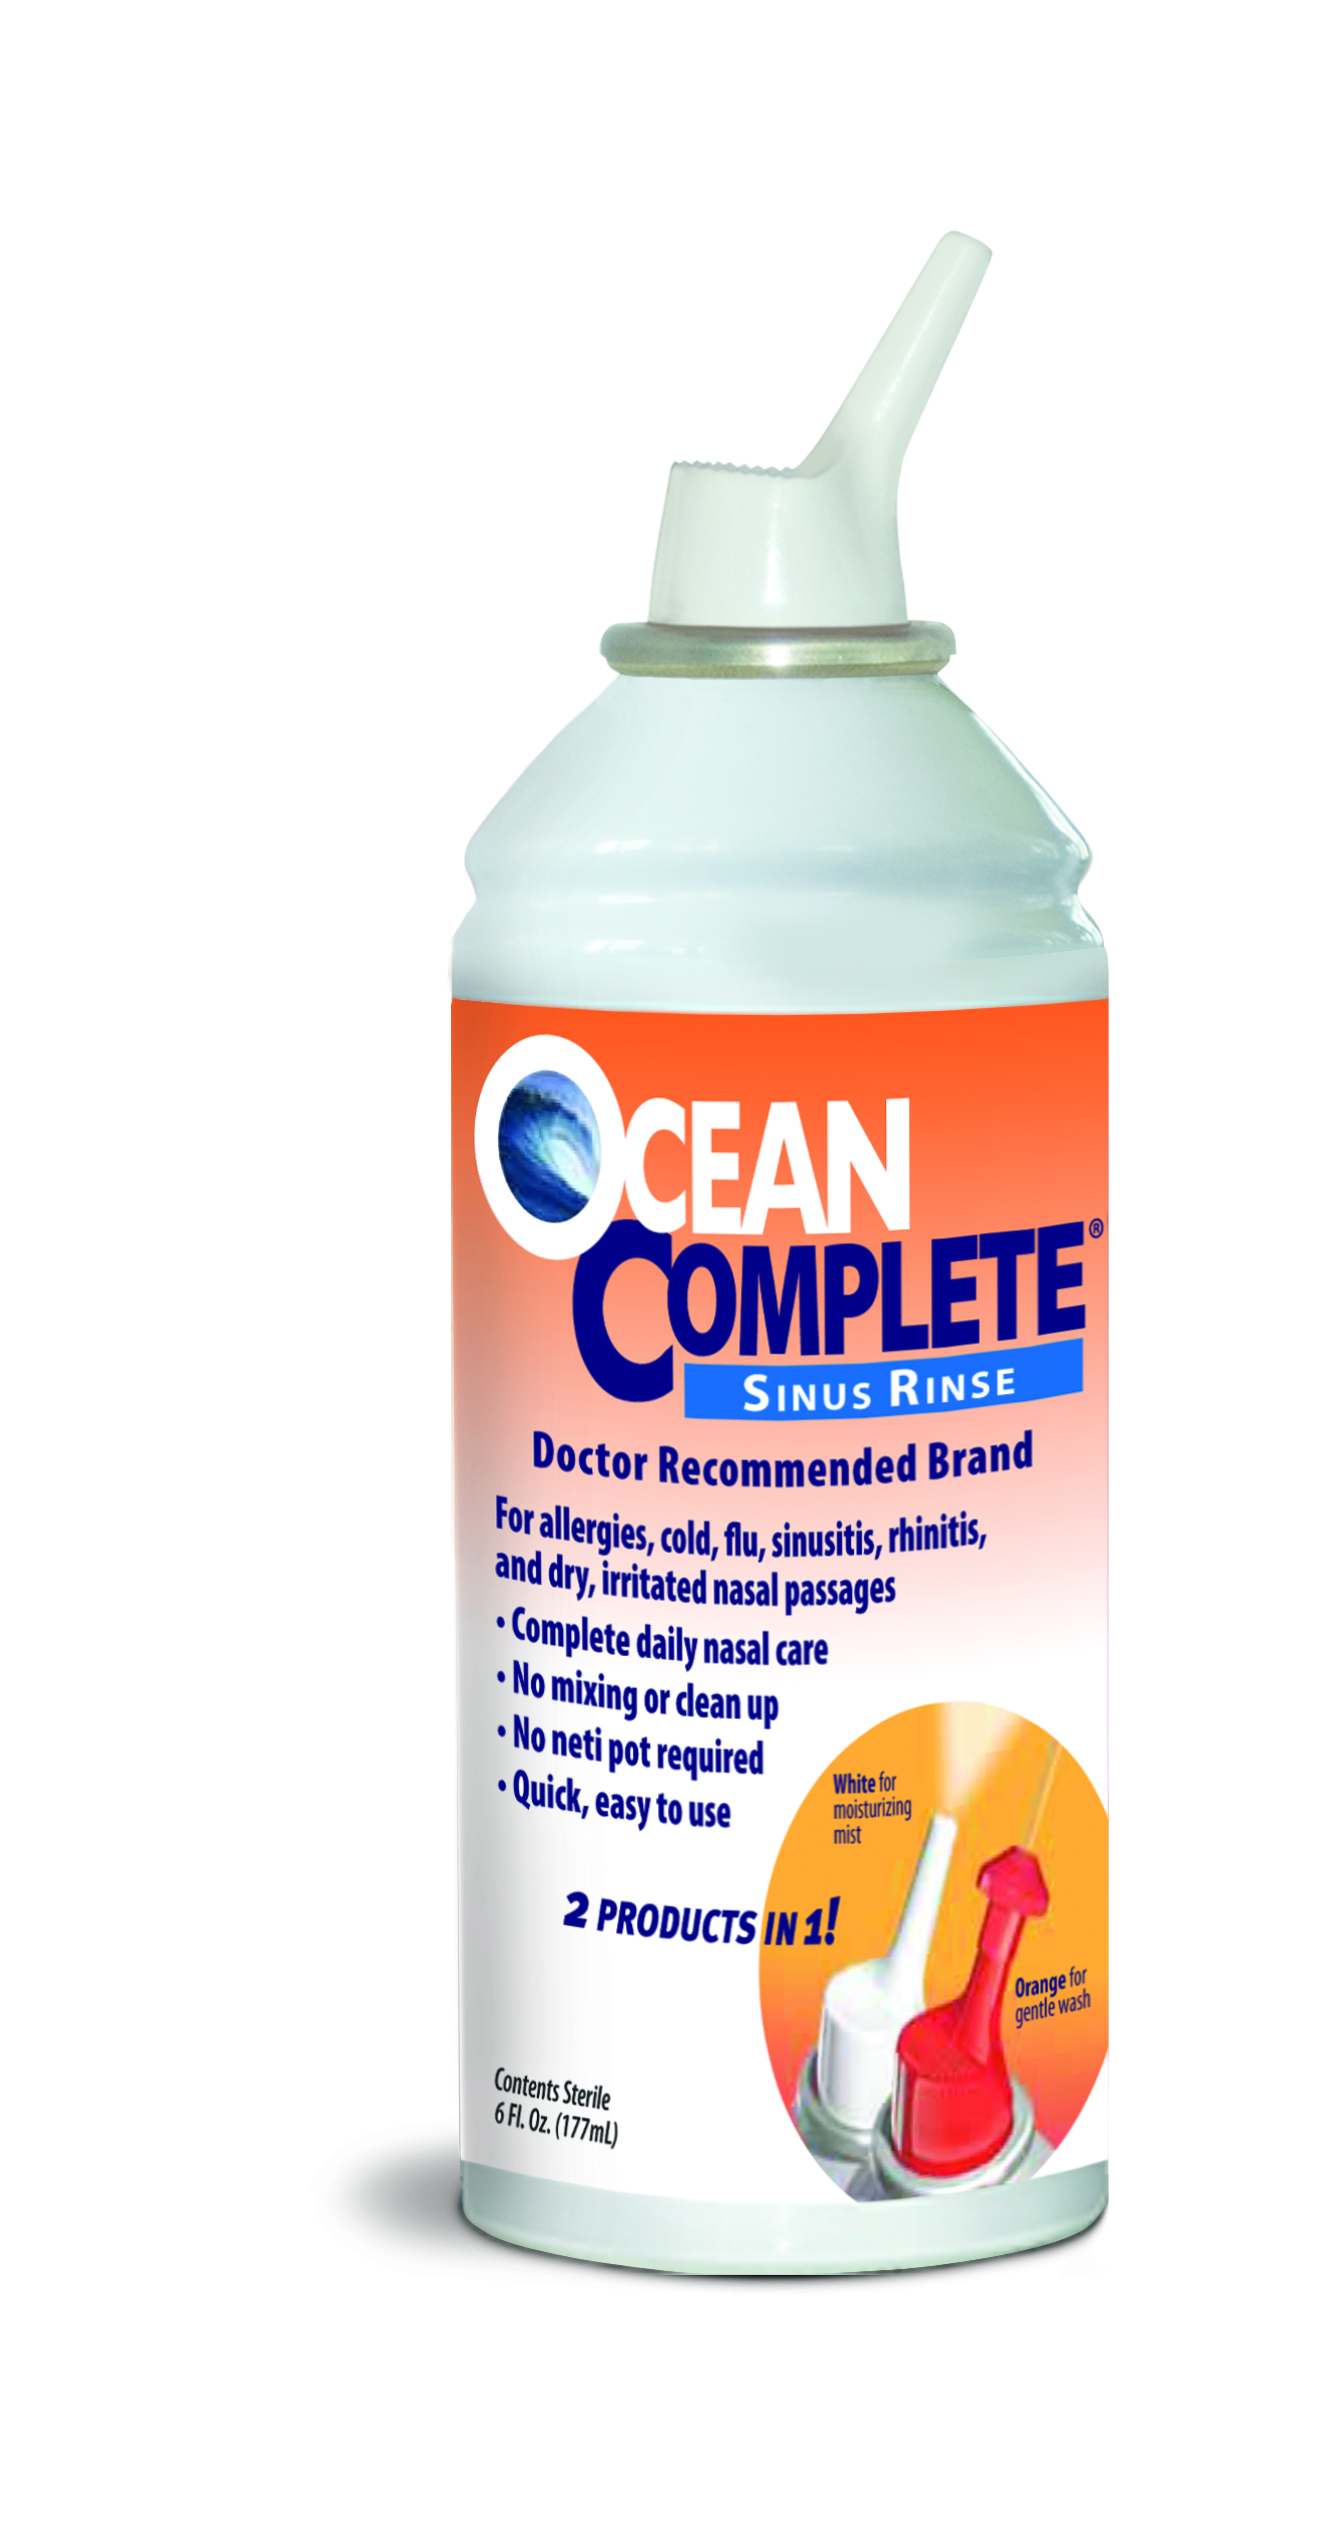 Ocean® Saline Nasal Care Products Video Review